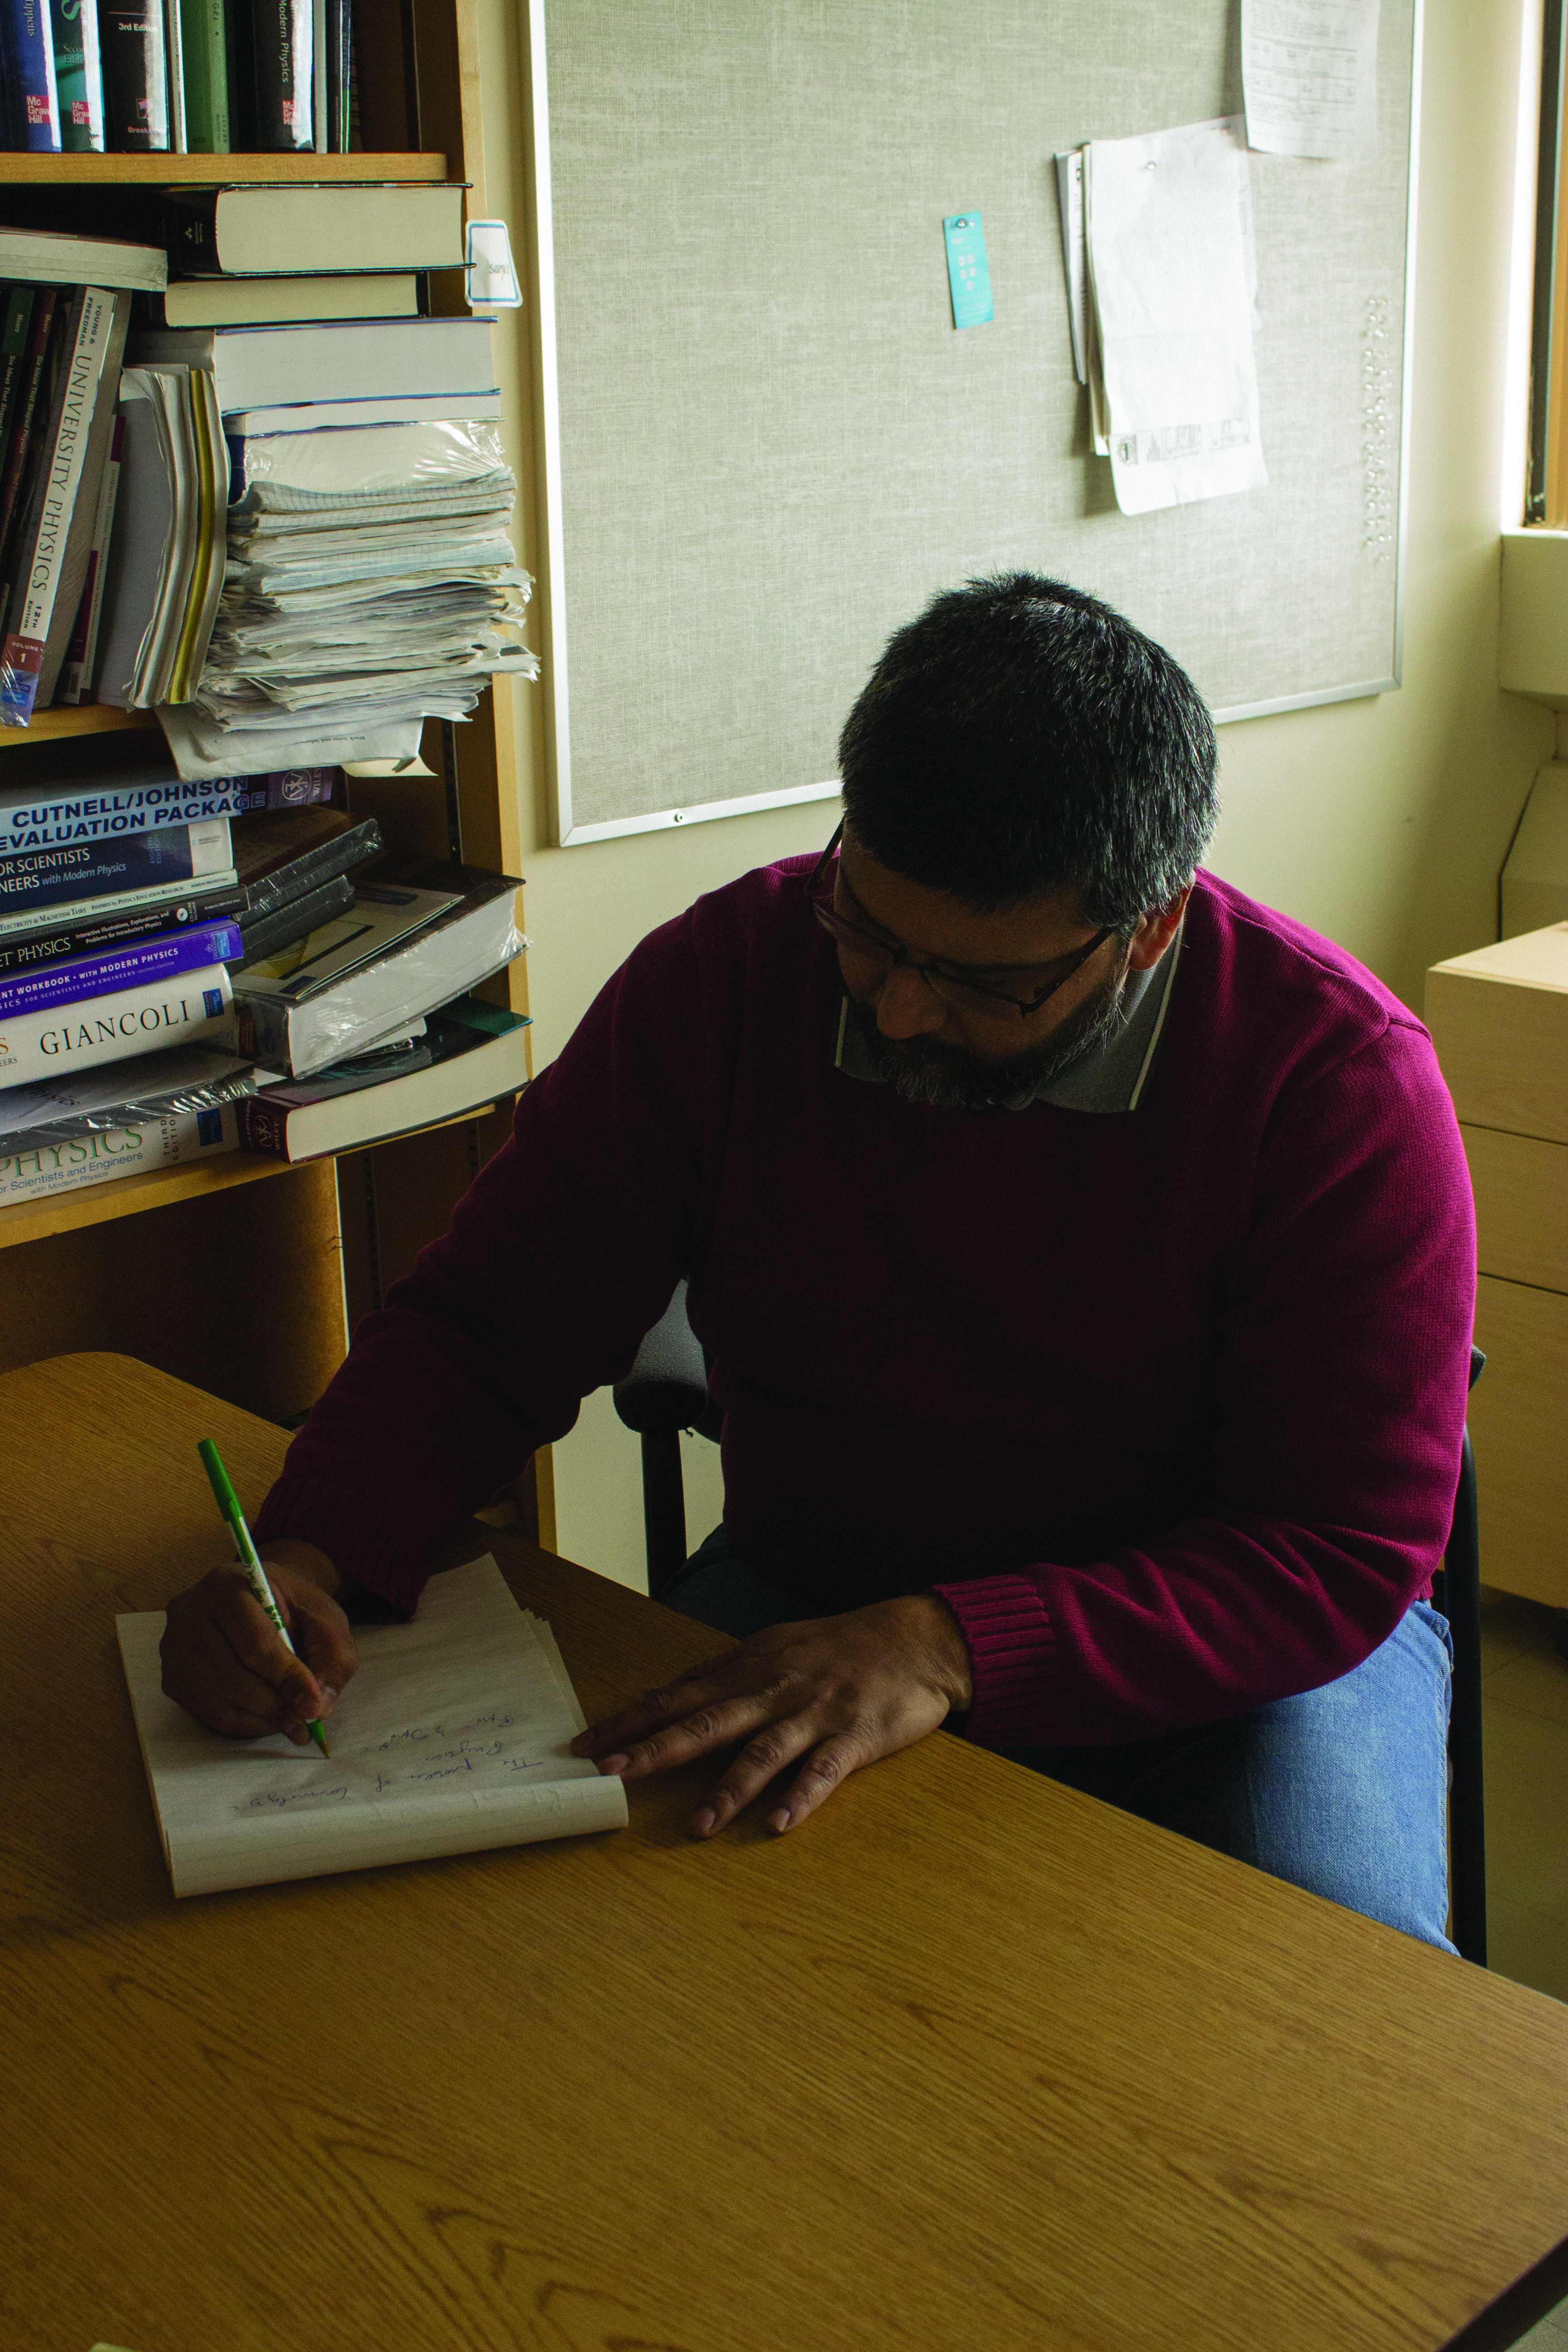 Saurya Das works on equations in his office at the University of Lethbridge.